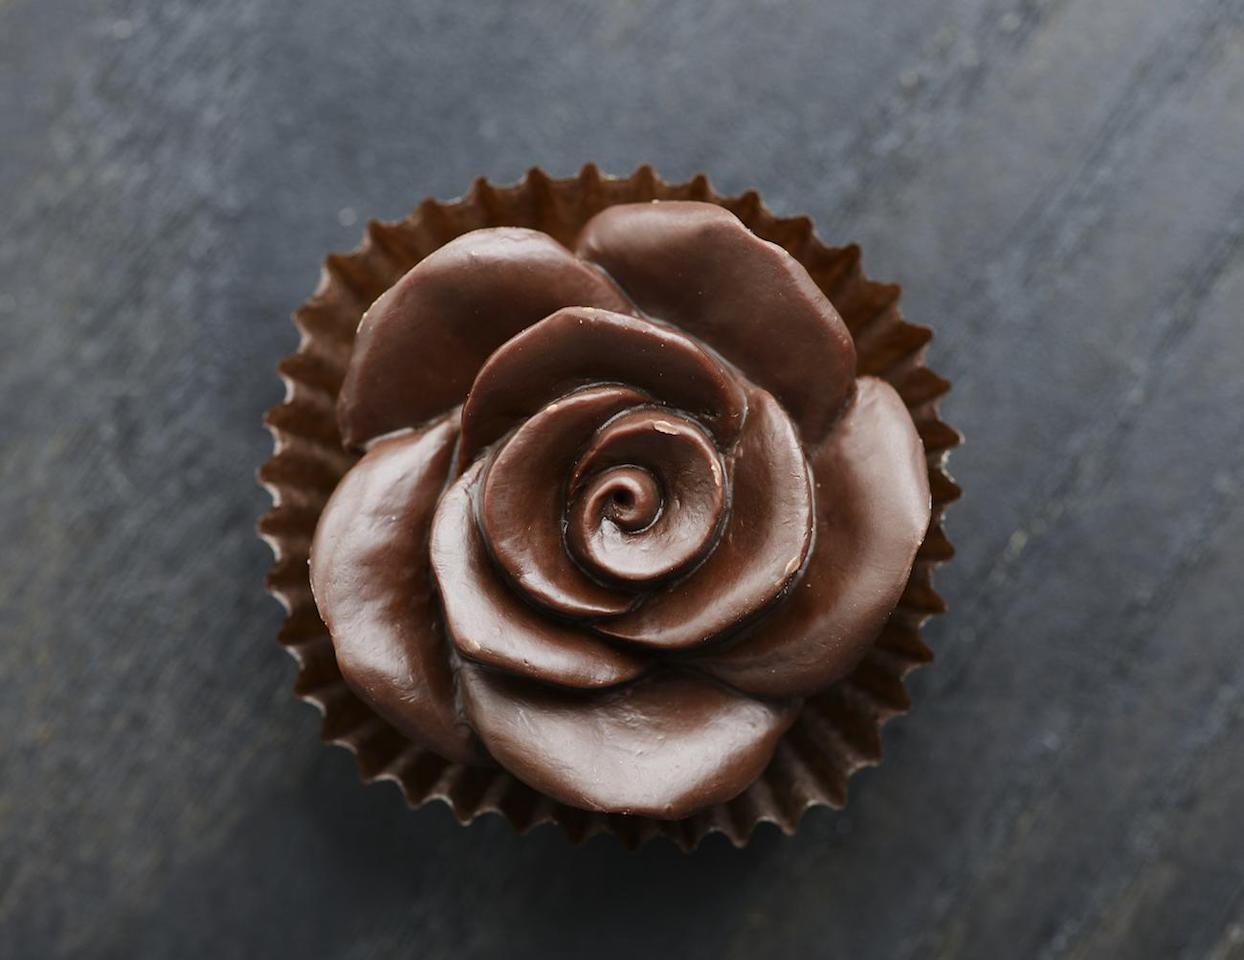 "<p>Wyoming would rather sweeten up its blossoms than its bling. It's also a state that stands alone, this time for its love of chocolate roses. Talk about <a href=""https://www.thedailymeal.com/eat/edible-plants-flowers?referrer=yahoo&category=beauty_food&include_utm=1&utm_medium=referral&utm_source=yahoo&utm_campaign=feed"">edible flowers. </a></p>"